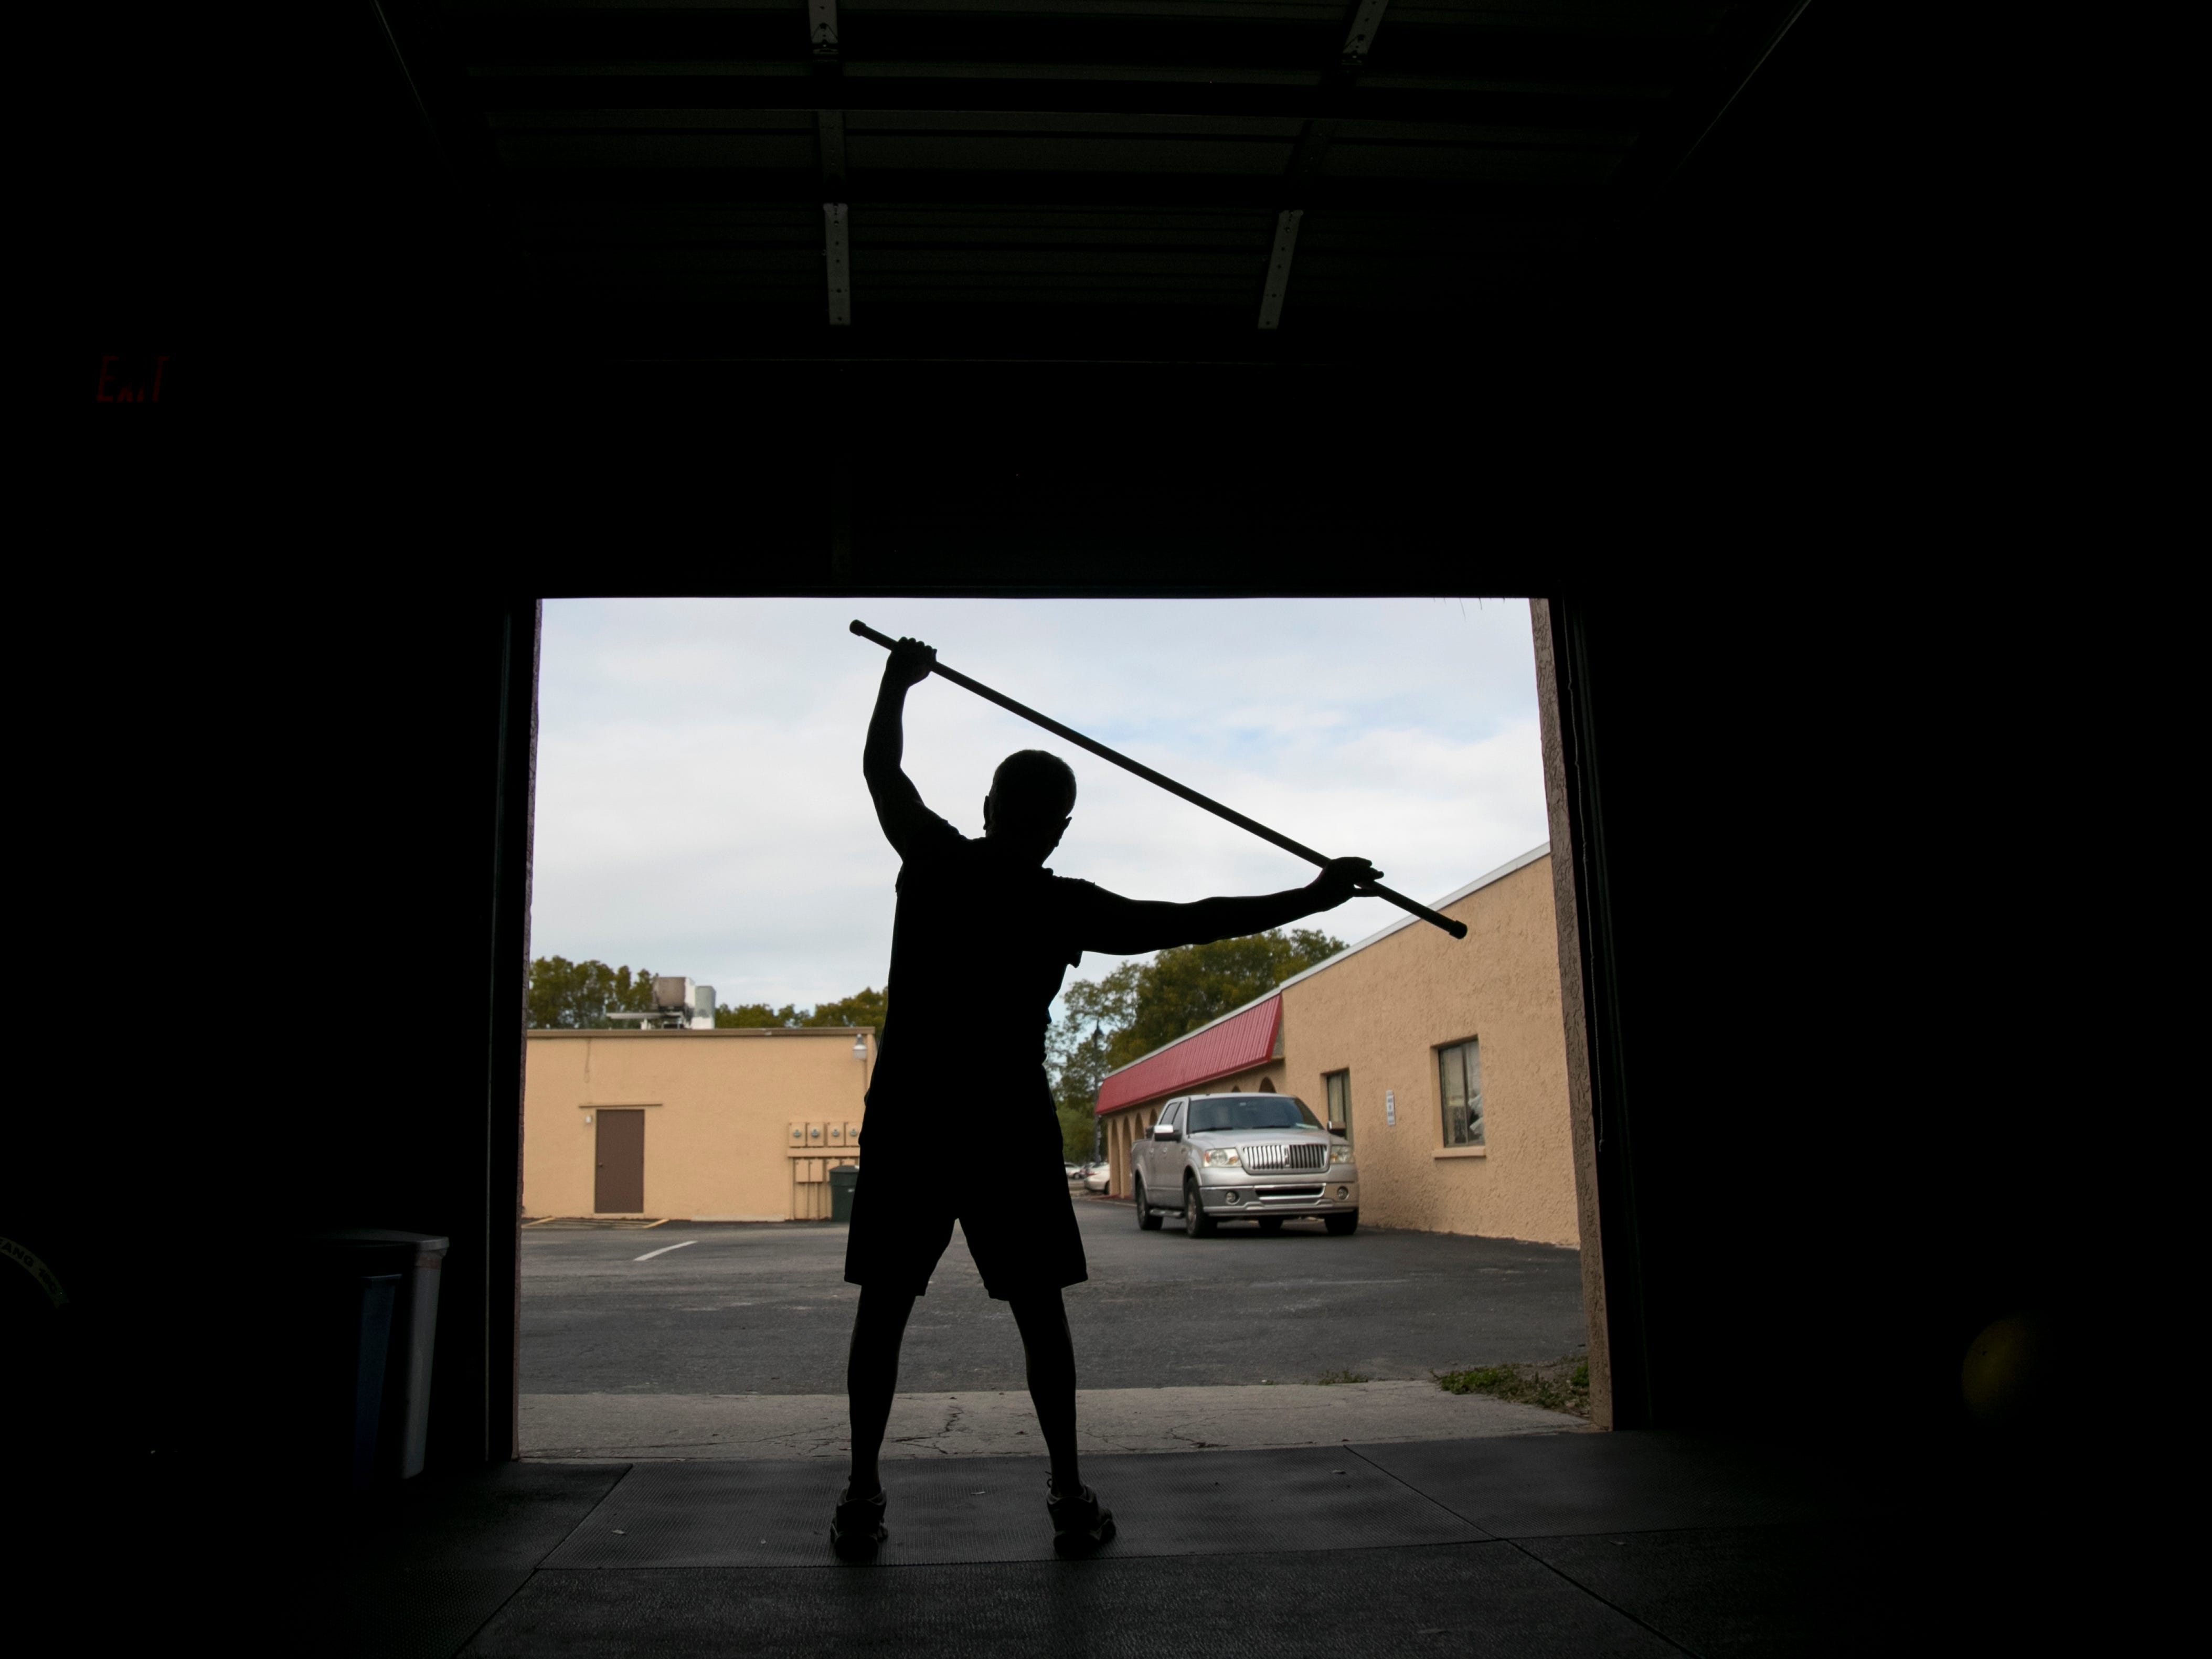 Bill Hanney, 62, stretches after the CrossFit Open 19.4 workout on Friday, March 15, 2019, at CrossFit 239 in Fort Myers.